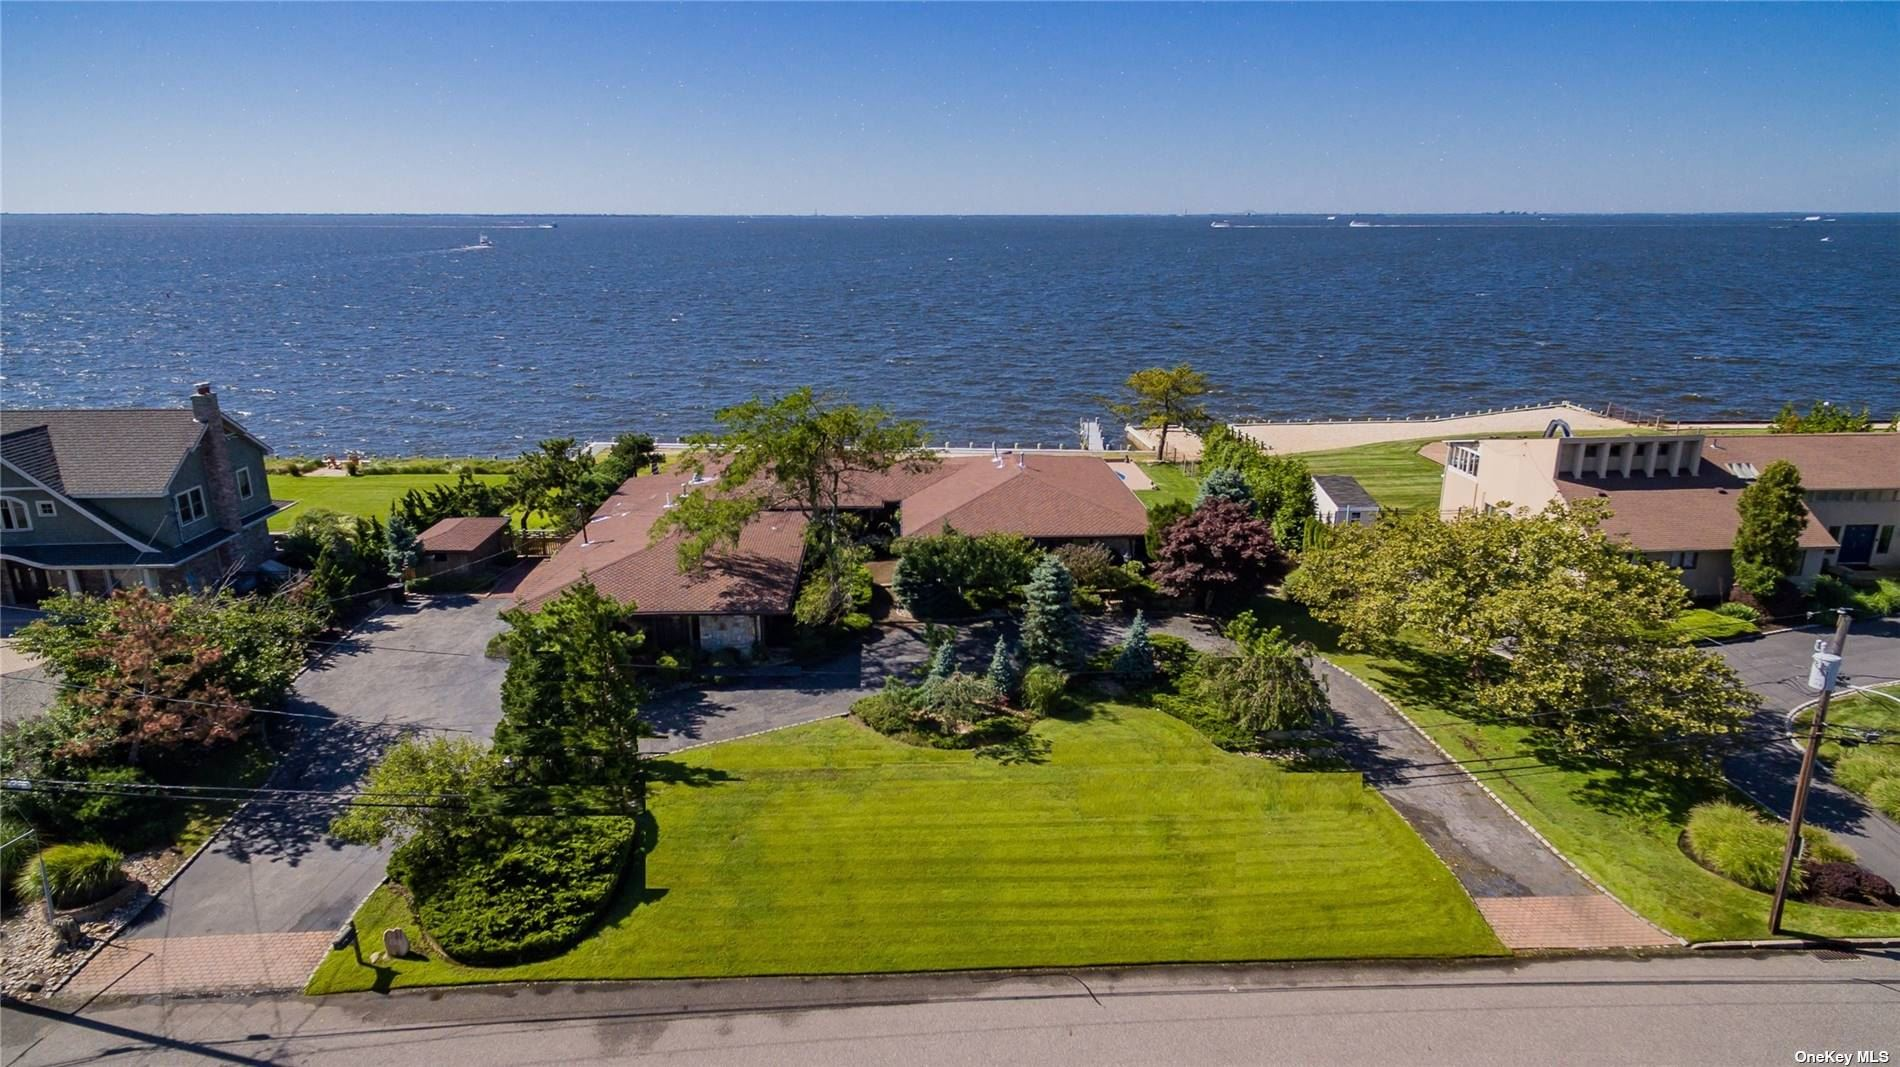 Amazing Bay Front Location In Desired The Moorings Approx 4000 Sq Ft Ranch W/ New Bulkhead & Jet Ski Lift. New In Ground Pool. Located In Luxury Gated Community, With Tennis And Marina. Beautifully Maintained With Views, Views, Views...Situated On The Great South Bay.